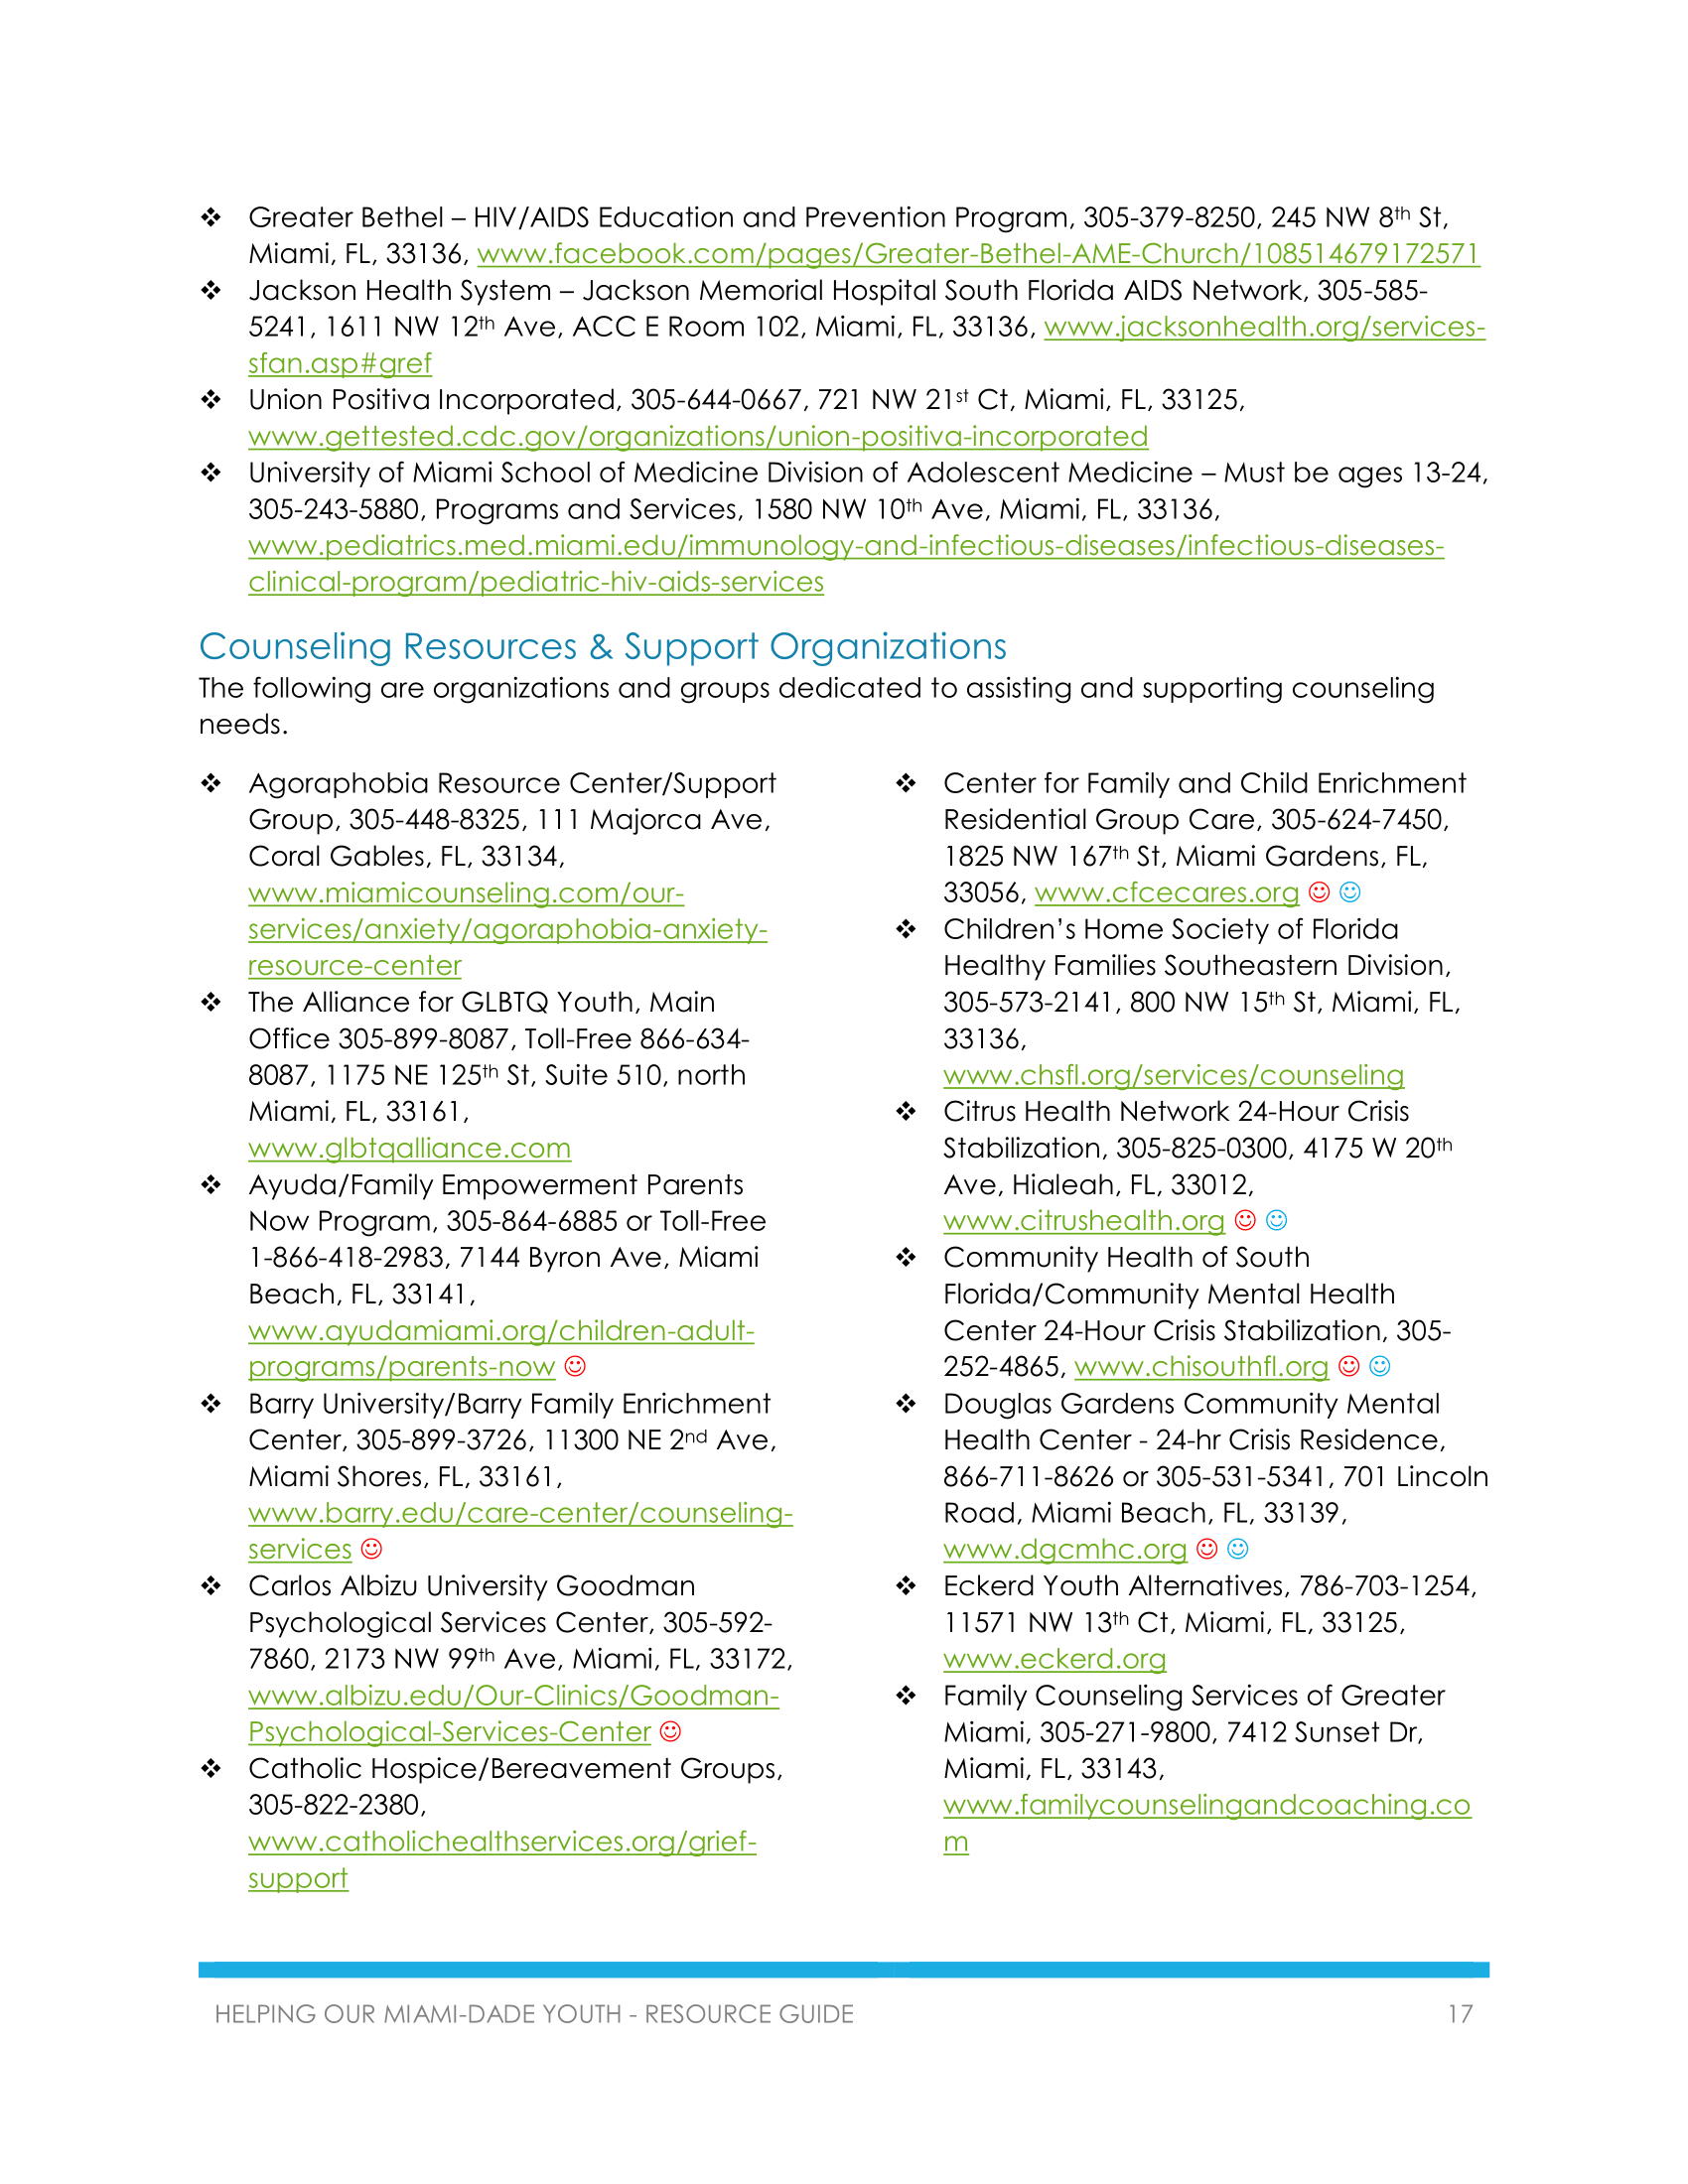 Youth Resource Guide - May 2018-22.png